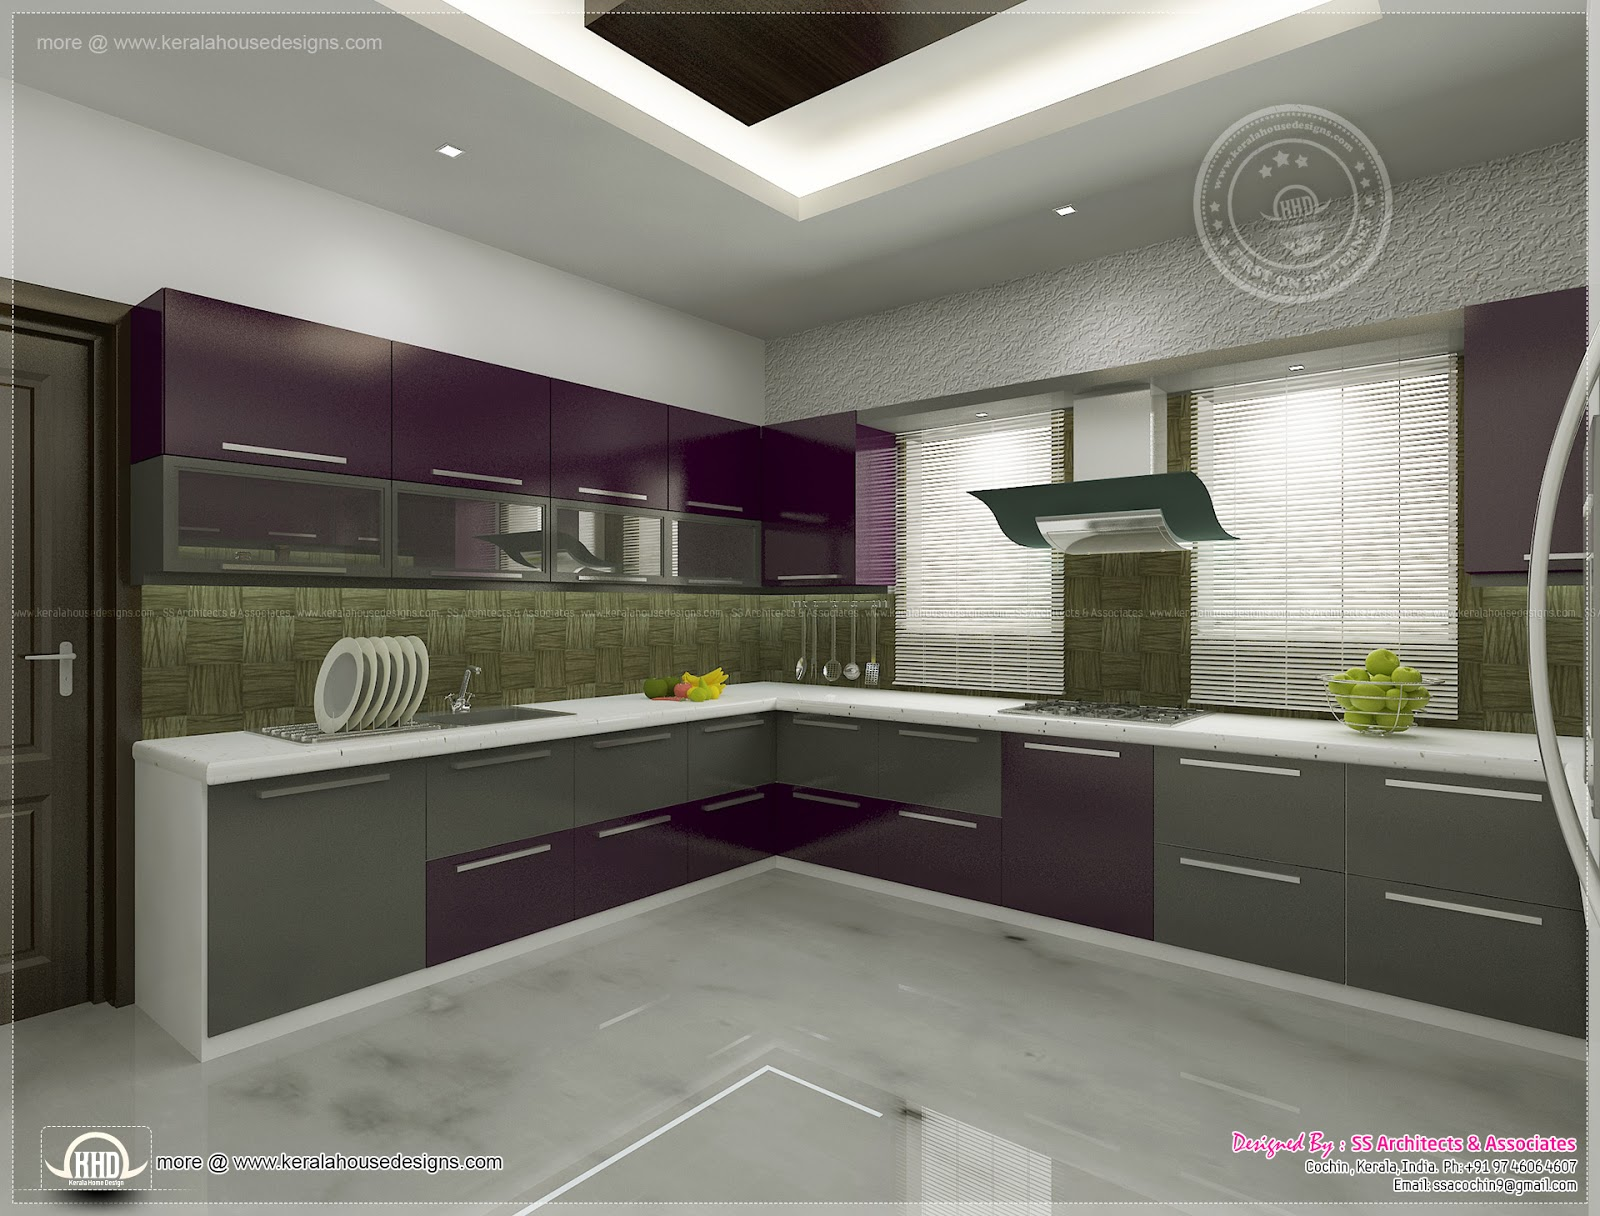 interior design ideas for kitchens kitchen interior views by ss architects cochin home kerala plans 6509